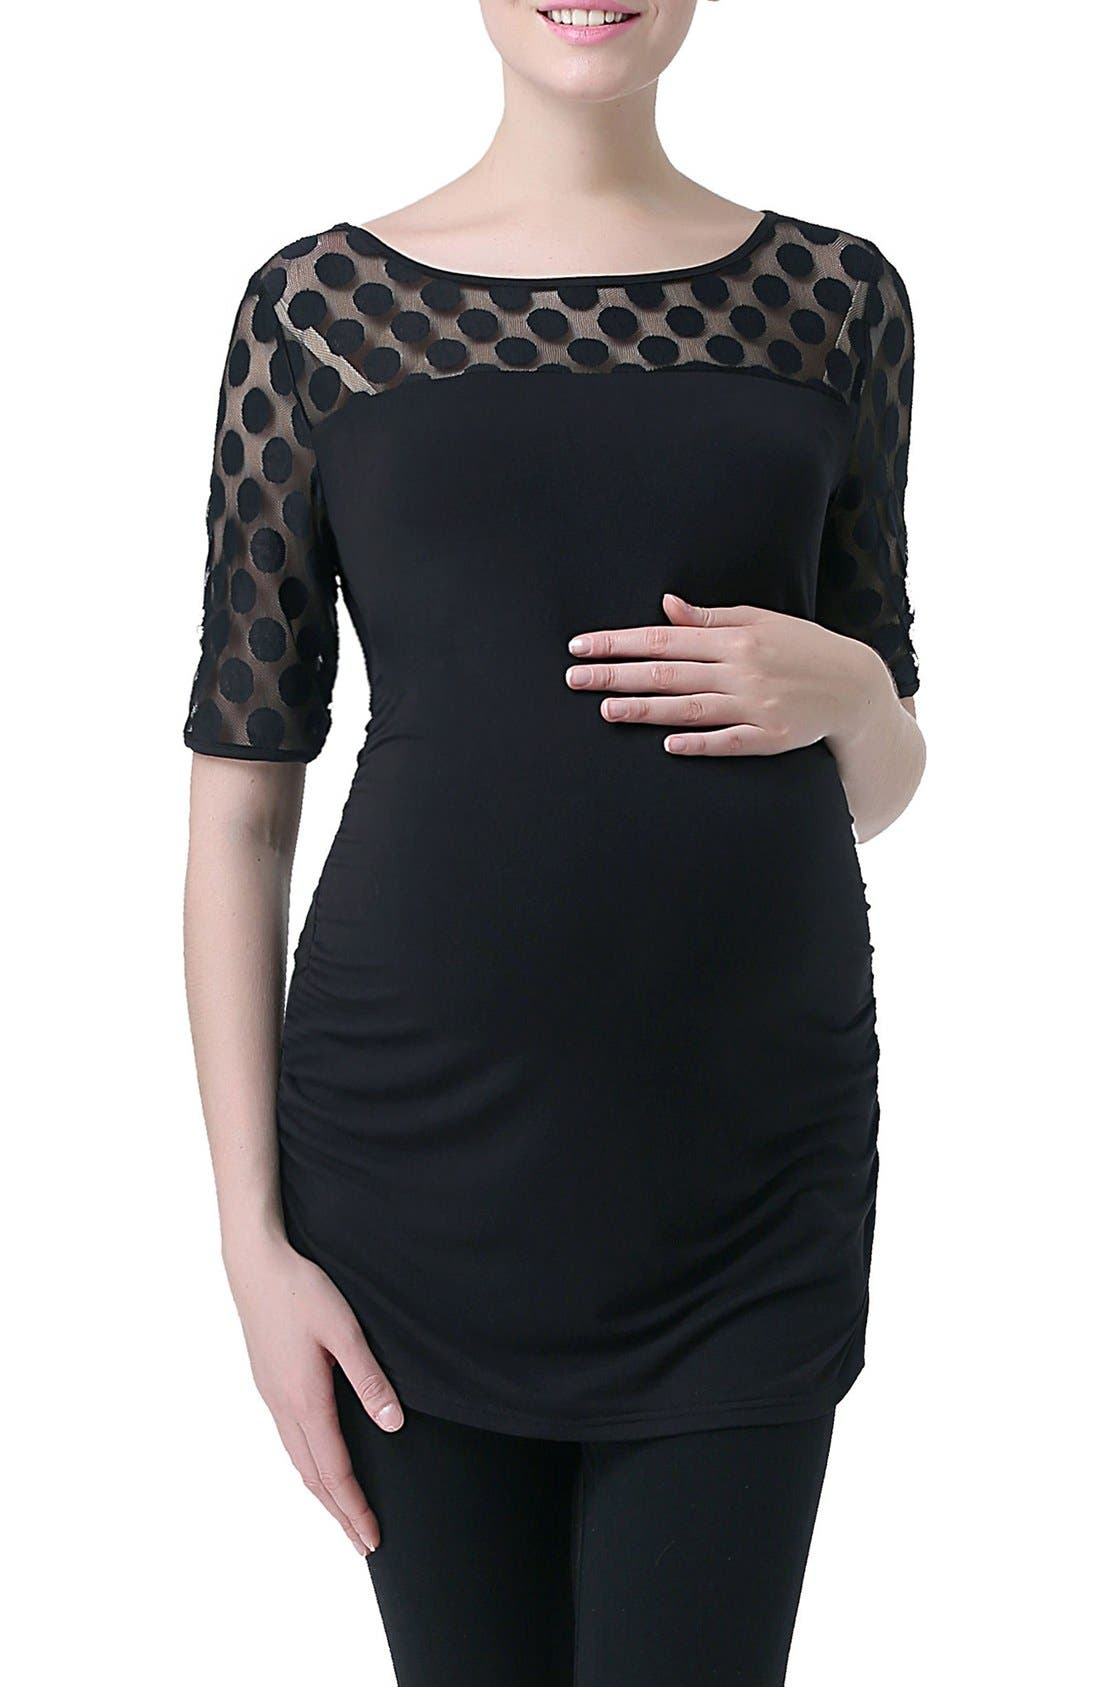 'Gisele' Dot Mesh Maternity Top,                             Main thumbnail 1, color,                             Black